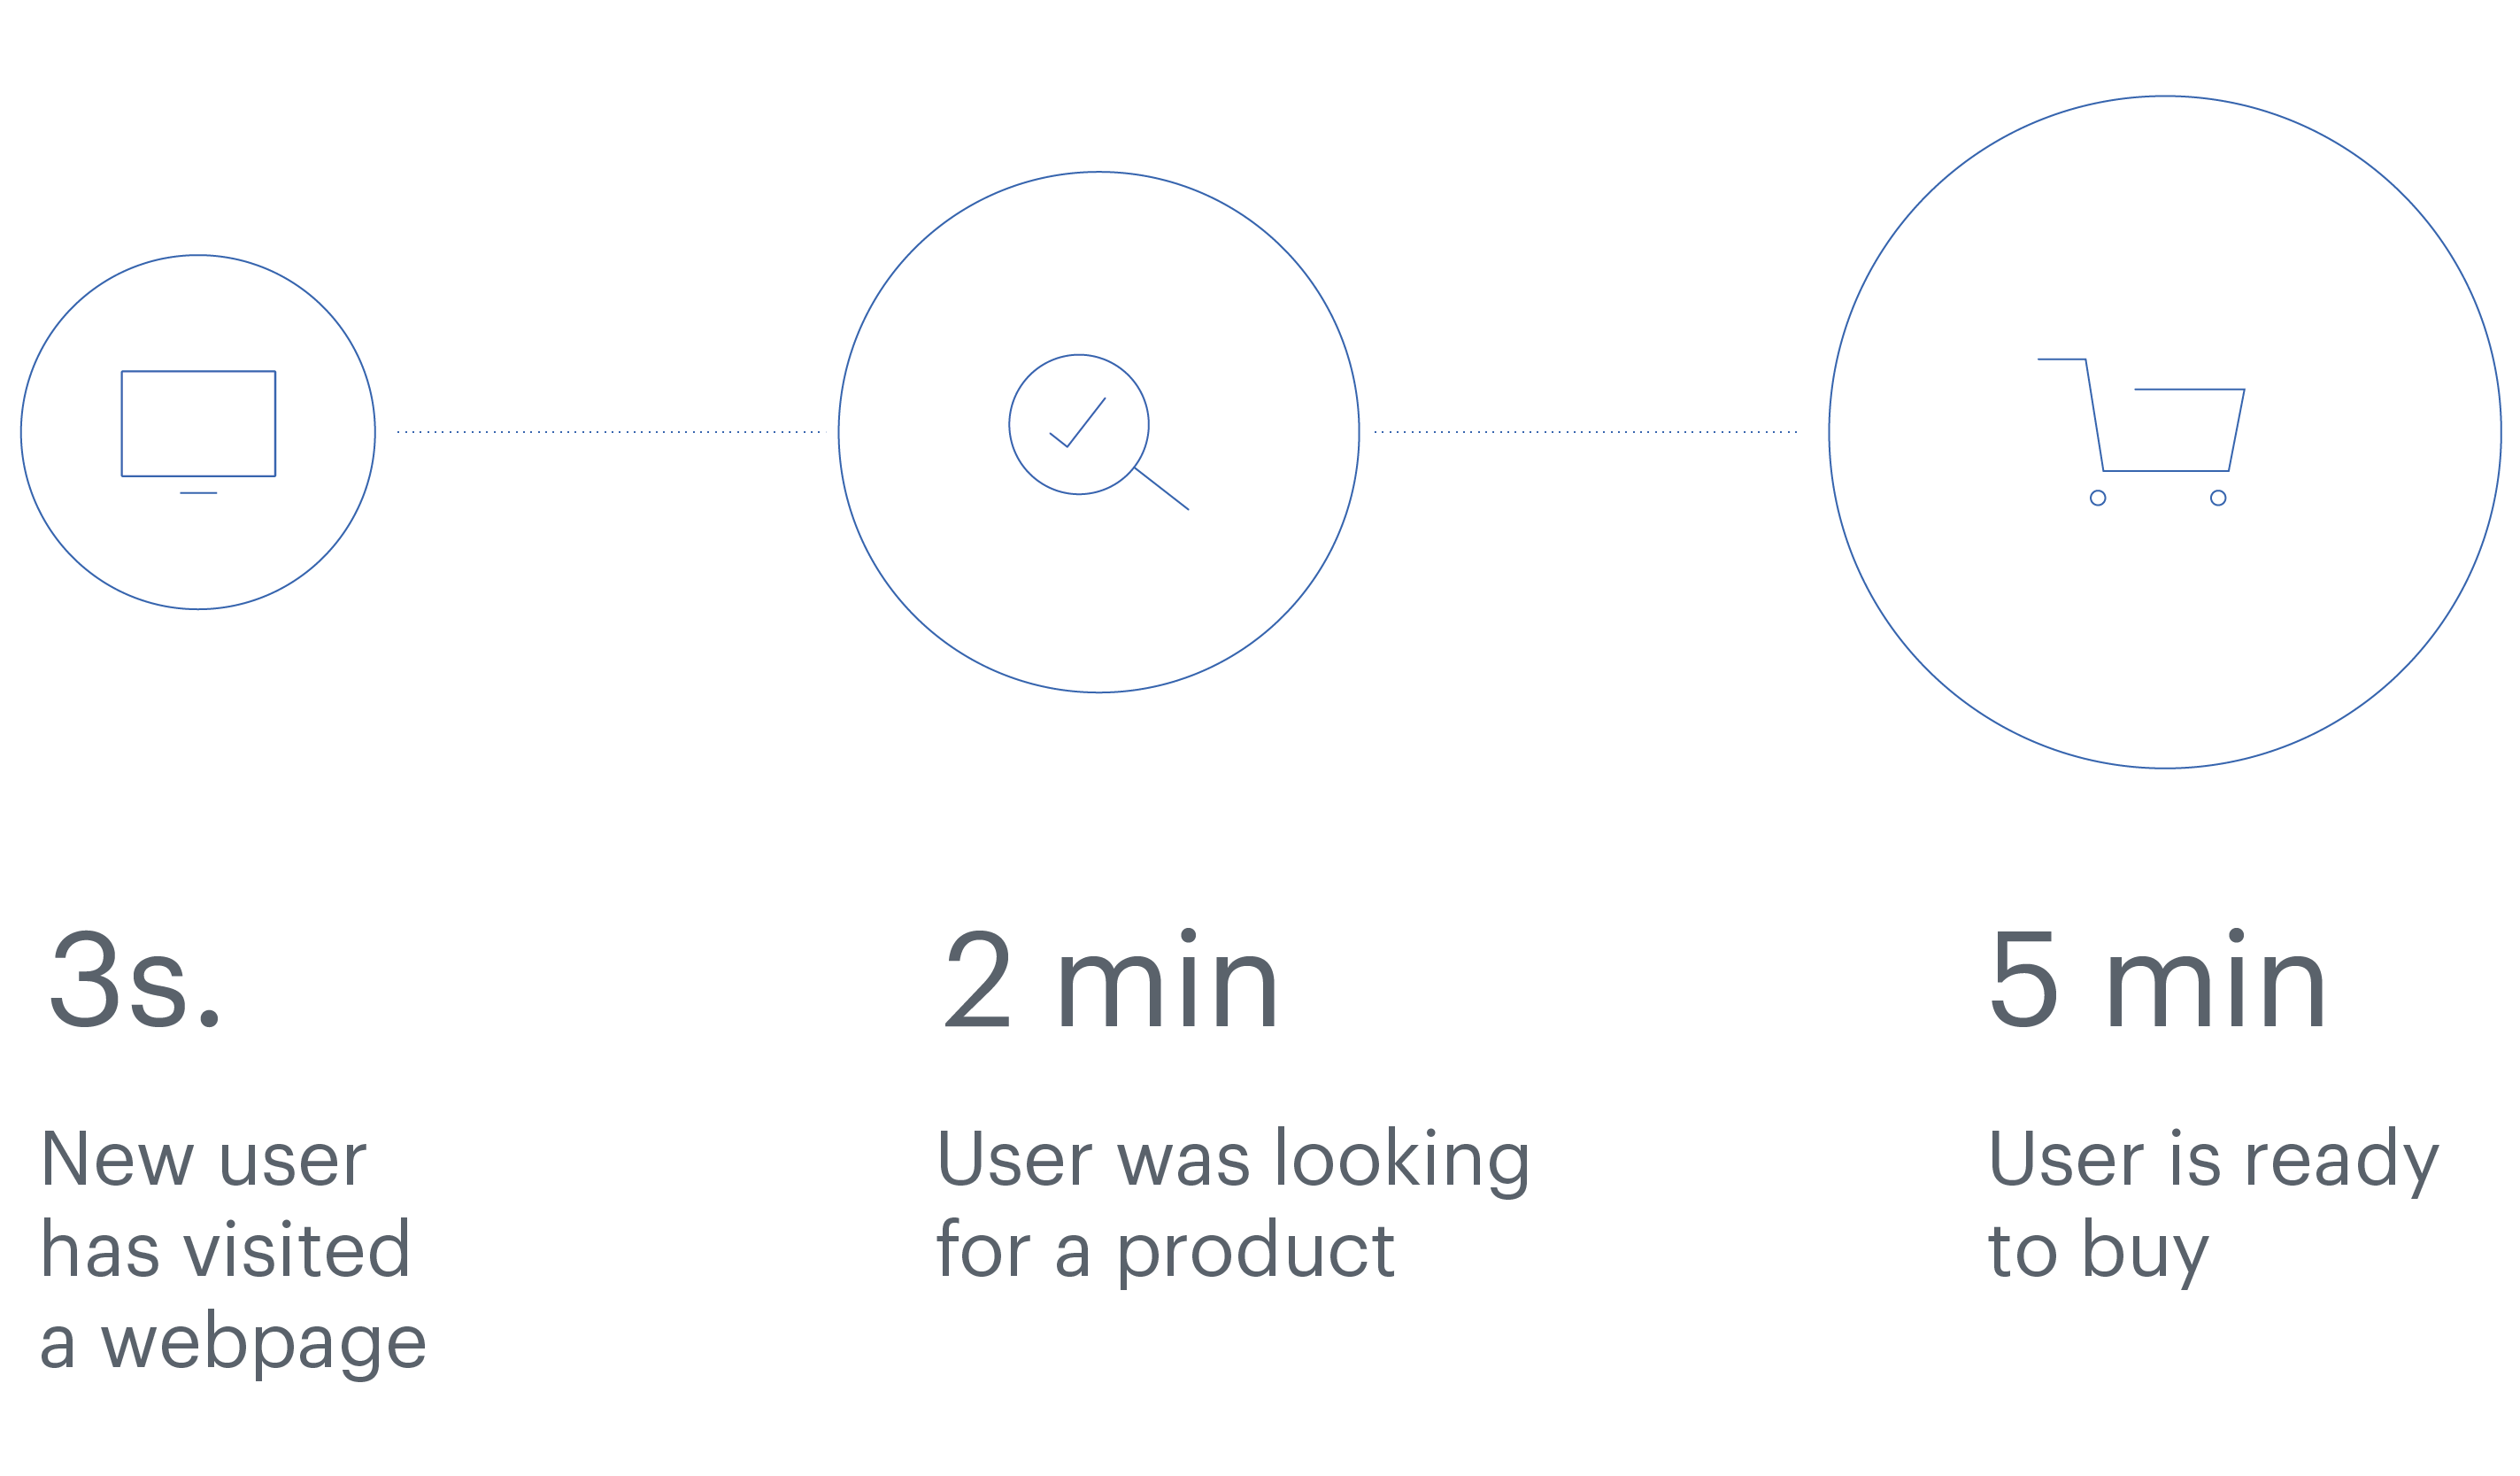 Time, user needs to make a purchase decision after visiting the website